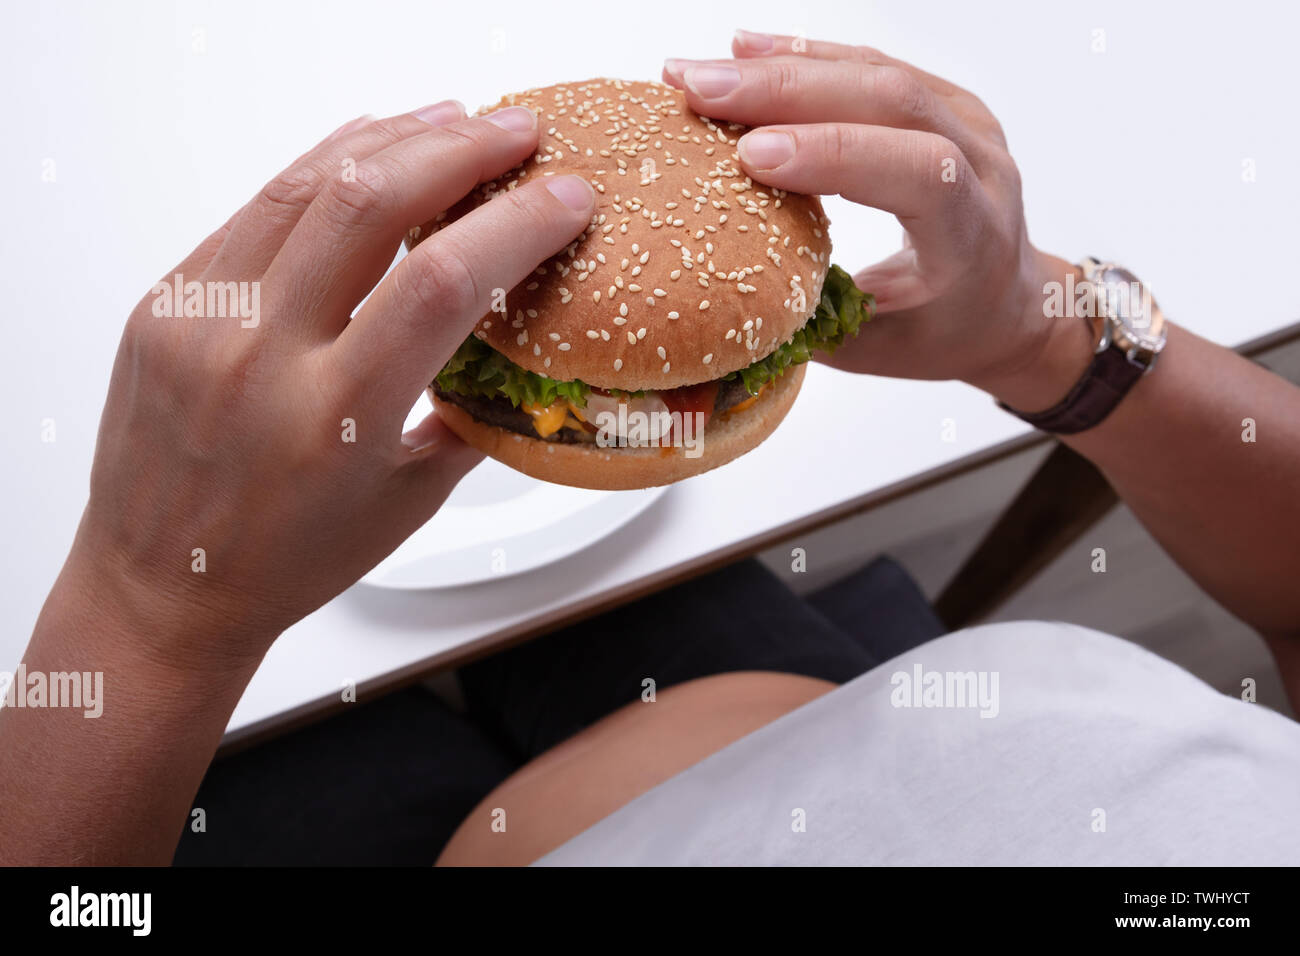 An Overhead View Of An Overweight Woman Holding Hamburger In Hand - Stock Image